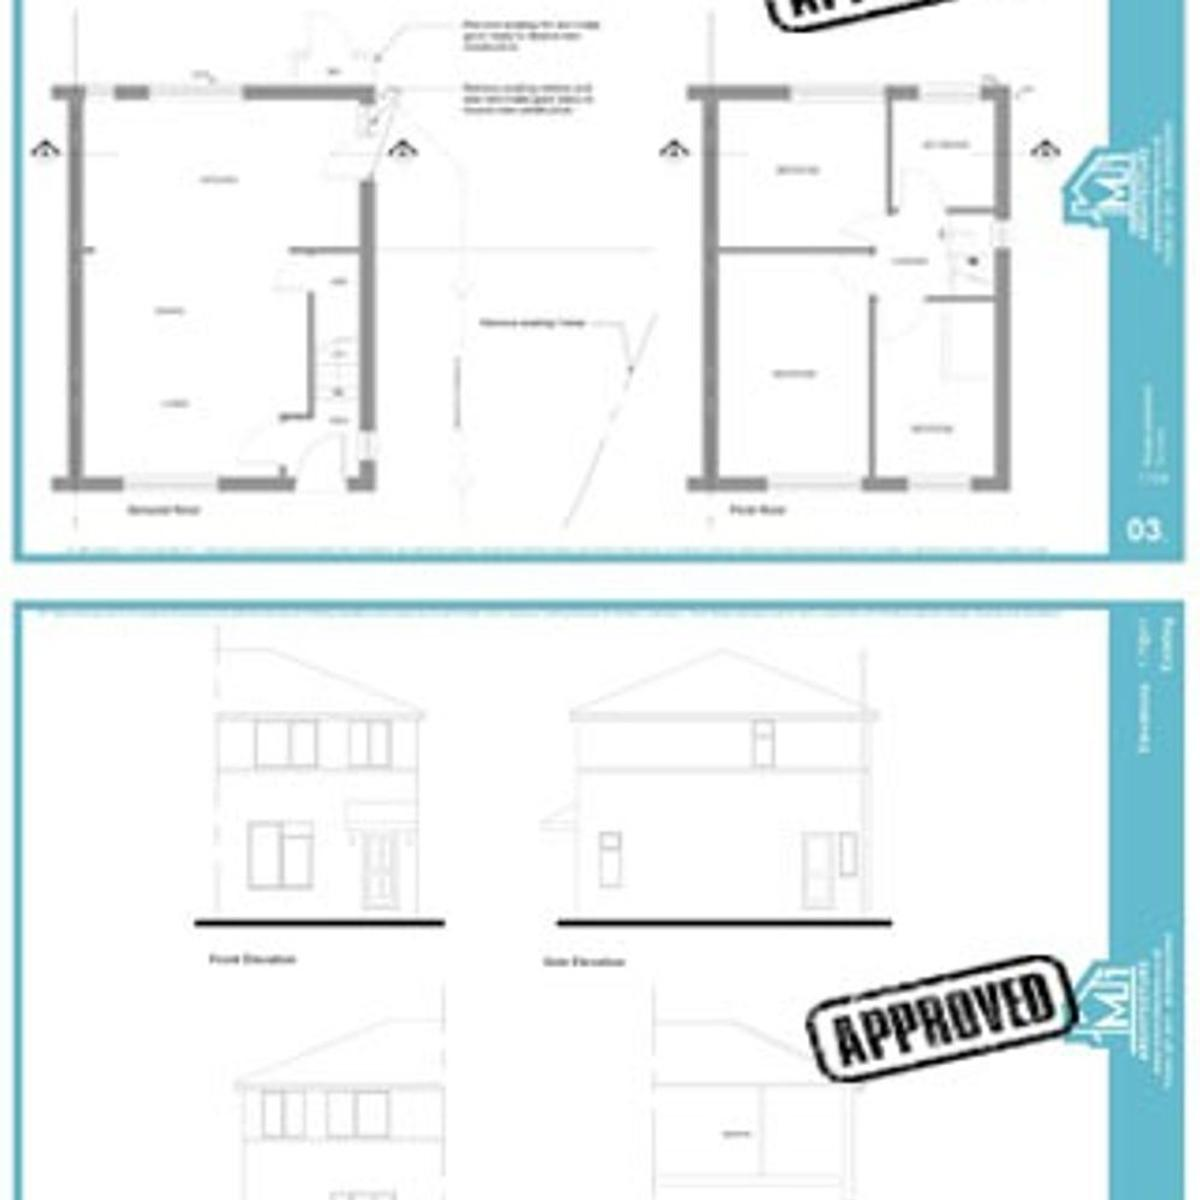 Architectural Drawings ~ £550 for a limited time only!  - House extensions - Loft Conversions - Garage Conversion - Dropped curb applications - Planning Applications - Building Regs Applications  Our easy 3 Step process will enable your project to run hustle free.  STAGE 1 - Consultation Meeting with the client, discuss ideas, write and agree on the brief, conduct laser measured survey of your property. Produce existing and proposed floor plans. Once Agreed, we then move on to next stage of design.  STAGE 2 - Detailed design We will produce a full set of detailed drawings (existing and proposed) Ground floor - First Floor - Roof and Site plan - Front elevation - Rear elevation - Side elevation - Section elevation - Construction Details - Specifications.  STAGE 3 - Application submissions. We send your drawings and fill out the application forms  Extra services 1. Structural engineers Design and Calculations if required  Drawings will be ready within 2 weeks. No one beat our prices